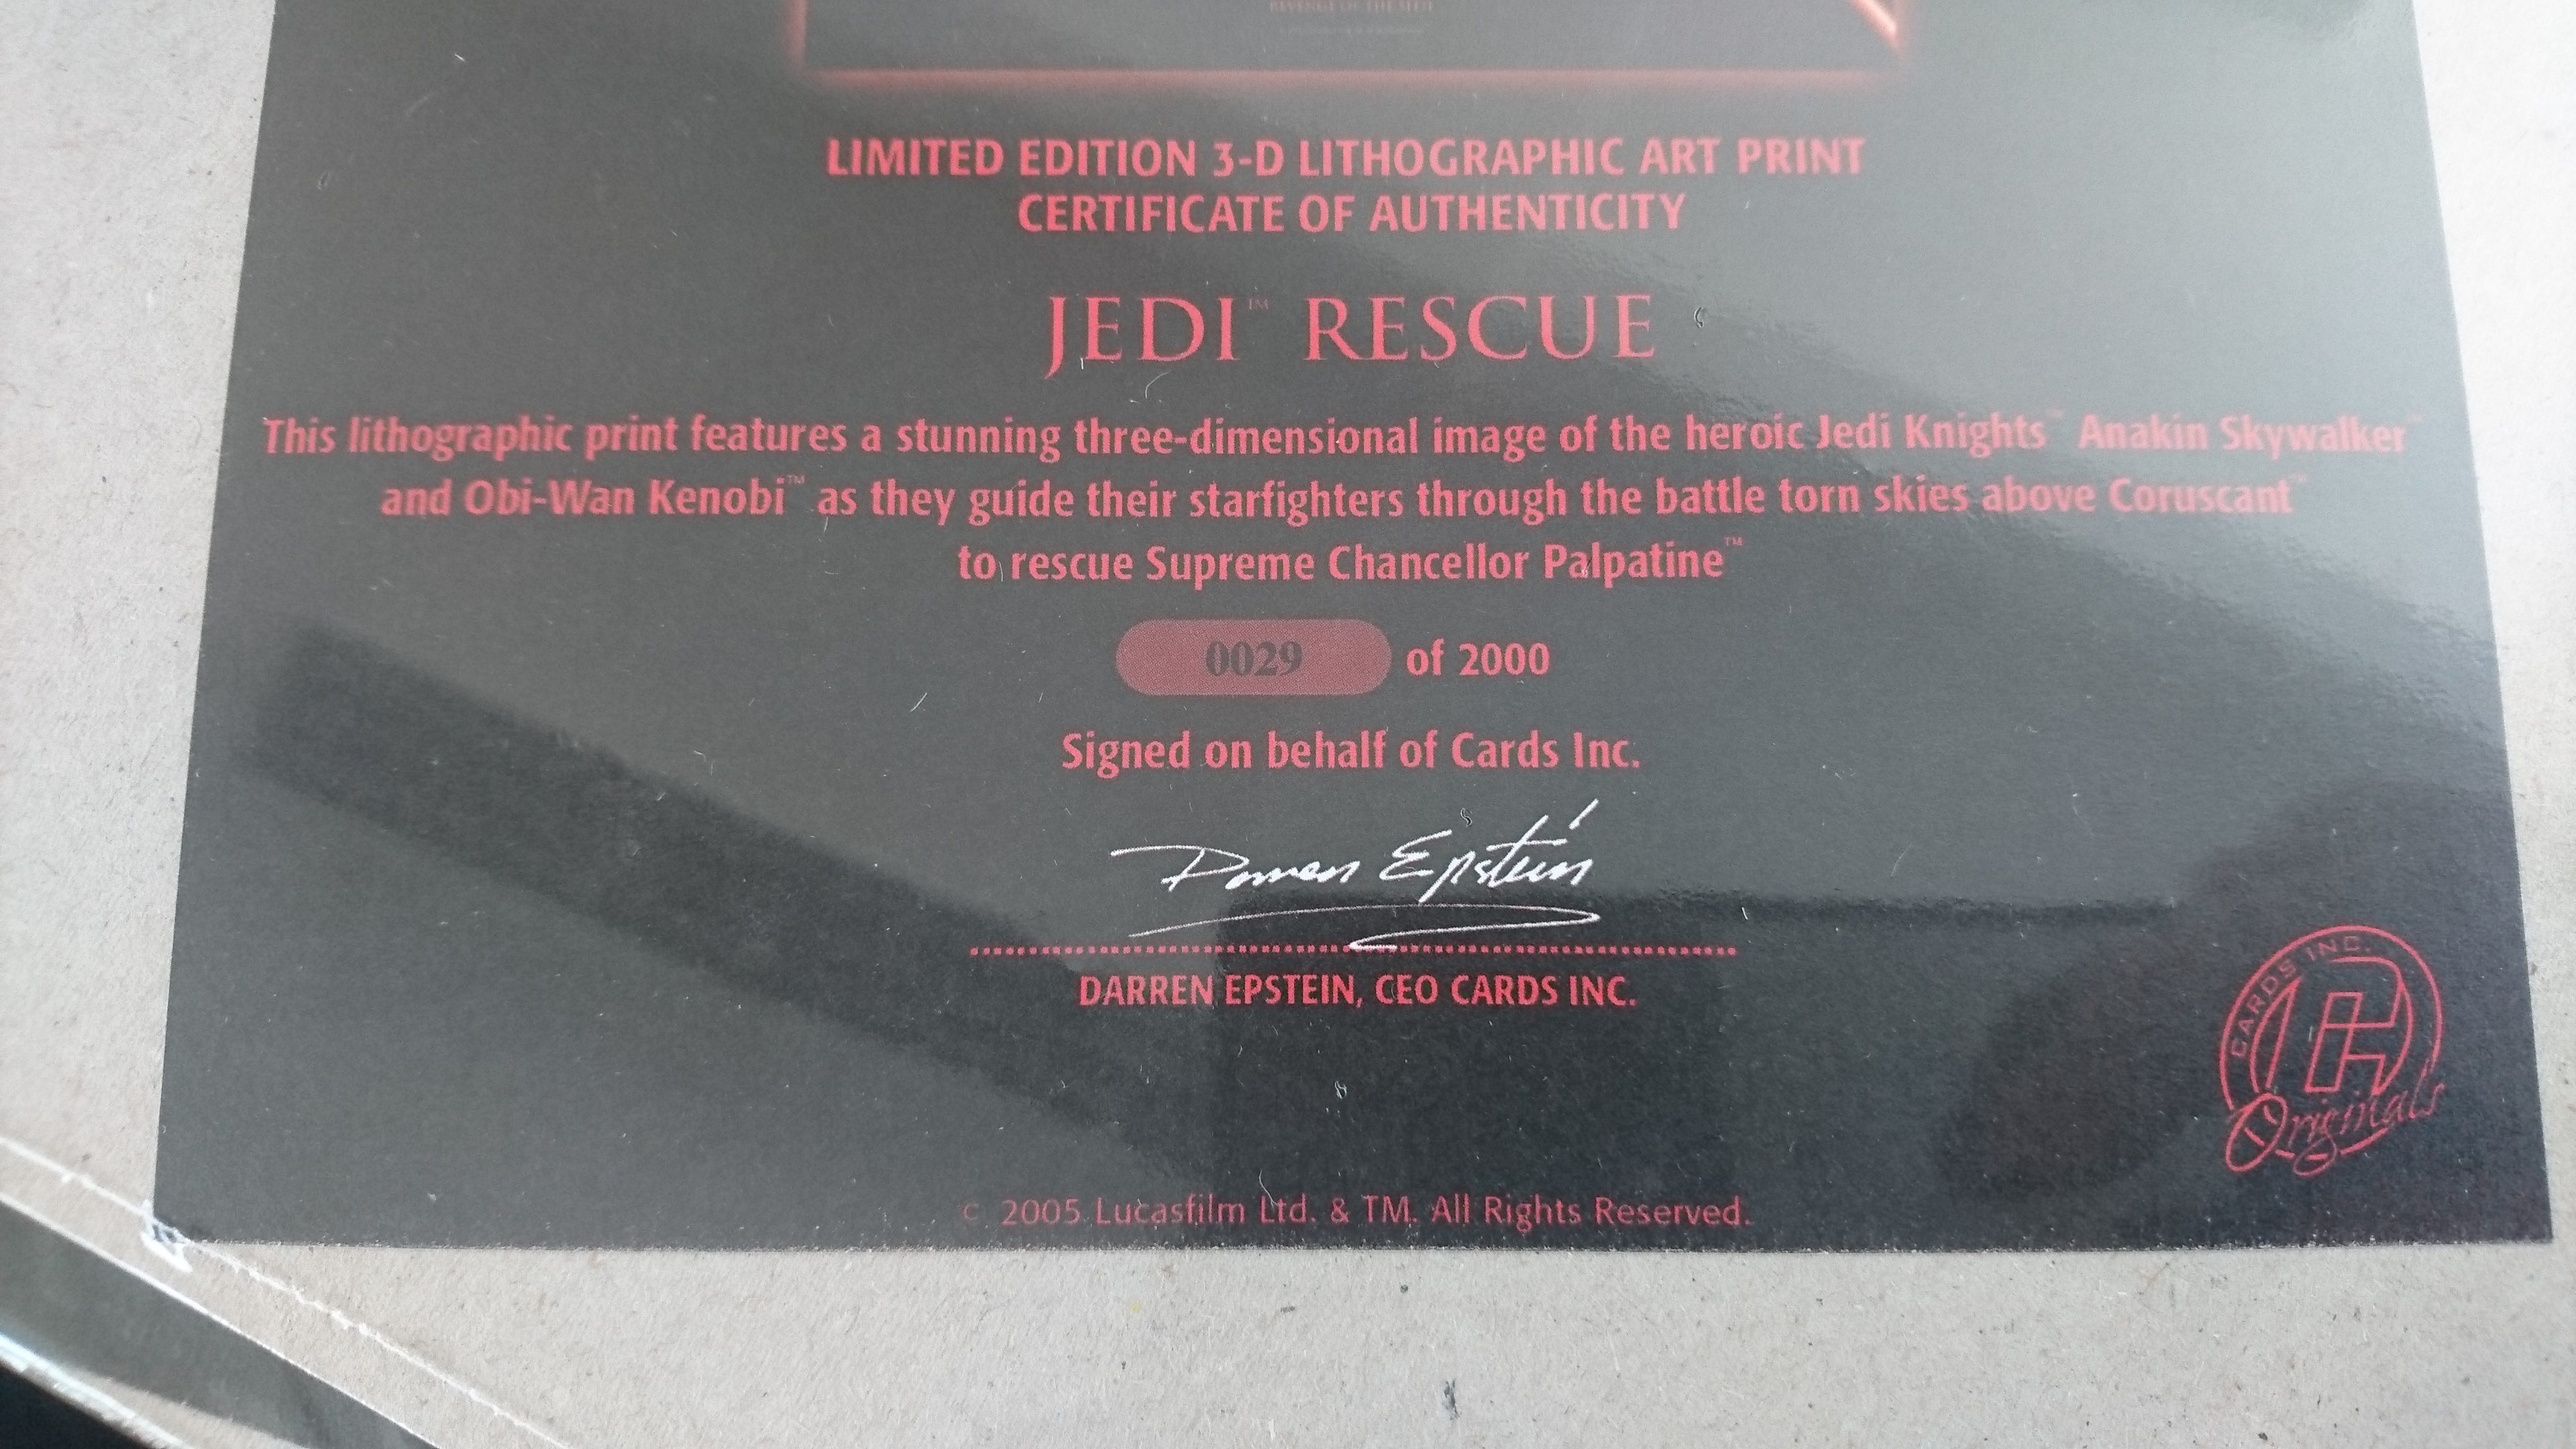 Limited edition star wars 3d lithographic print with for Limited edition print certificate of authenticity template